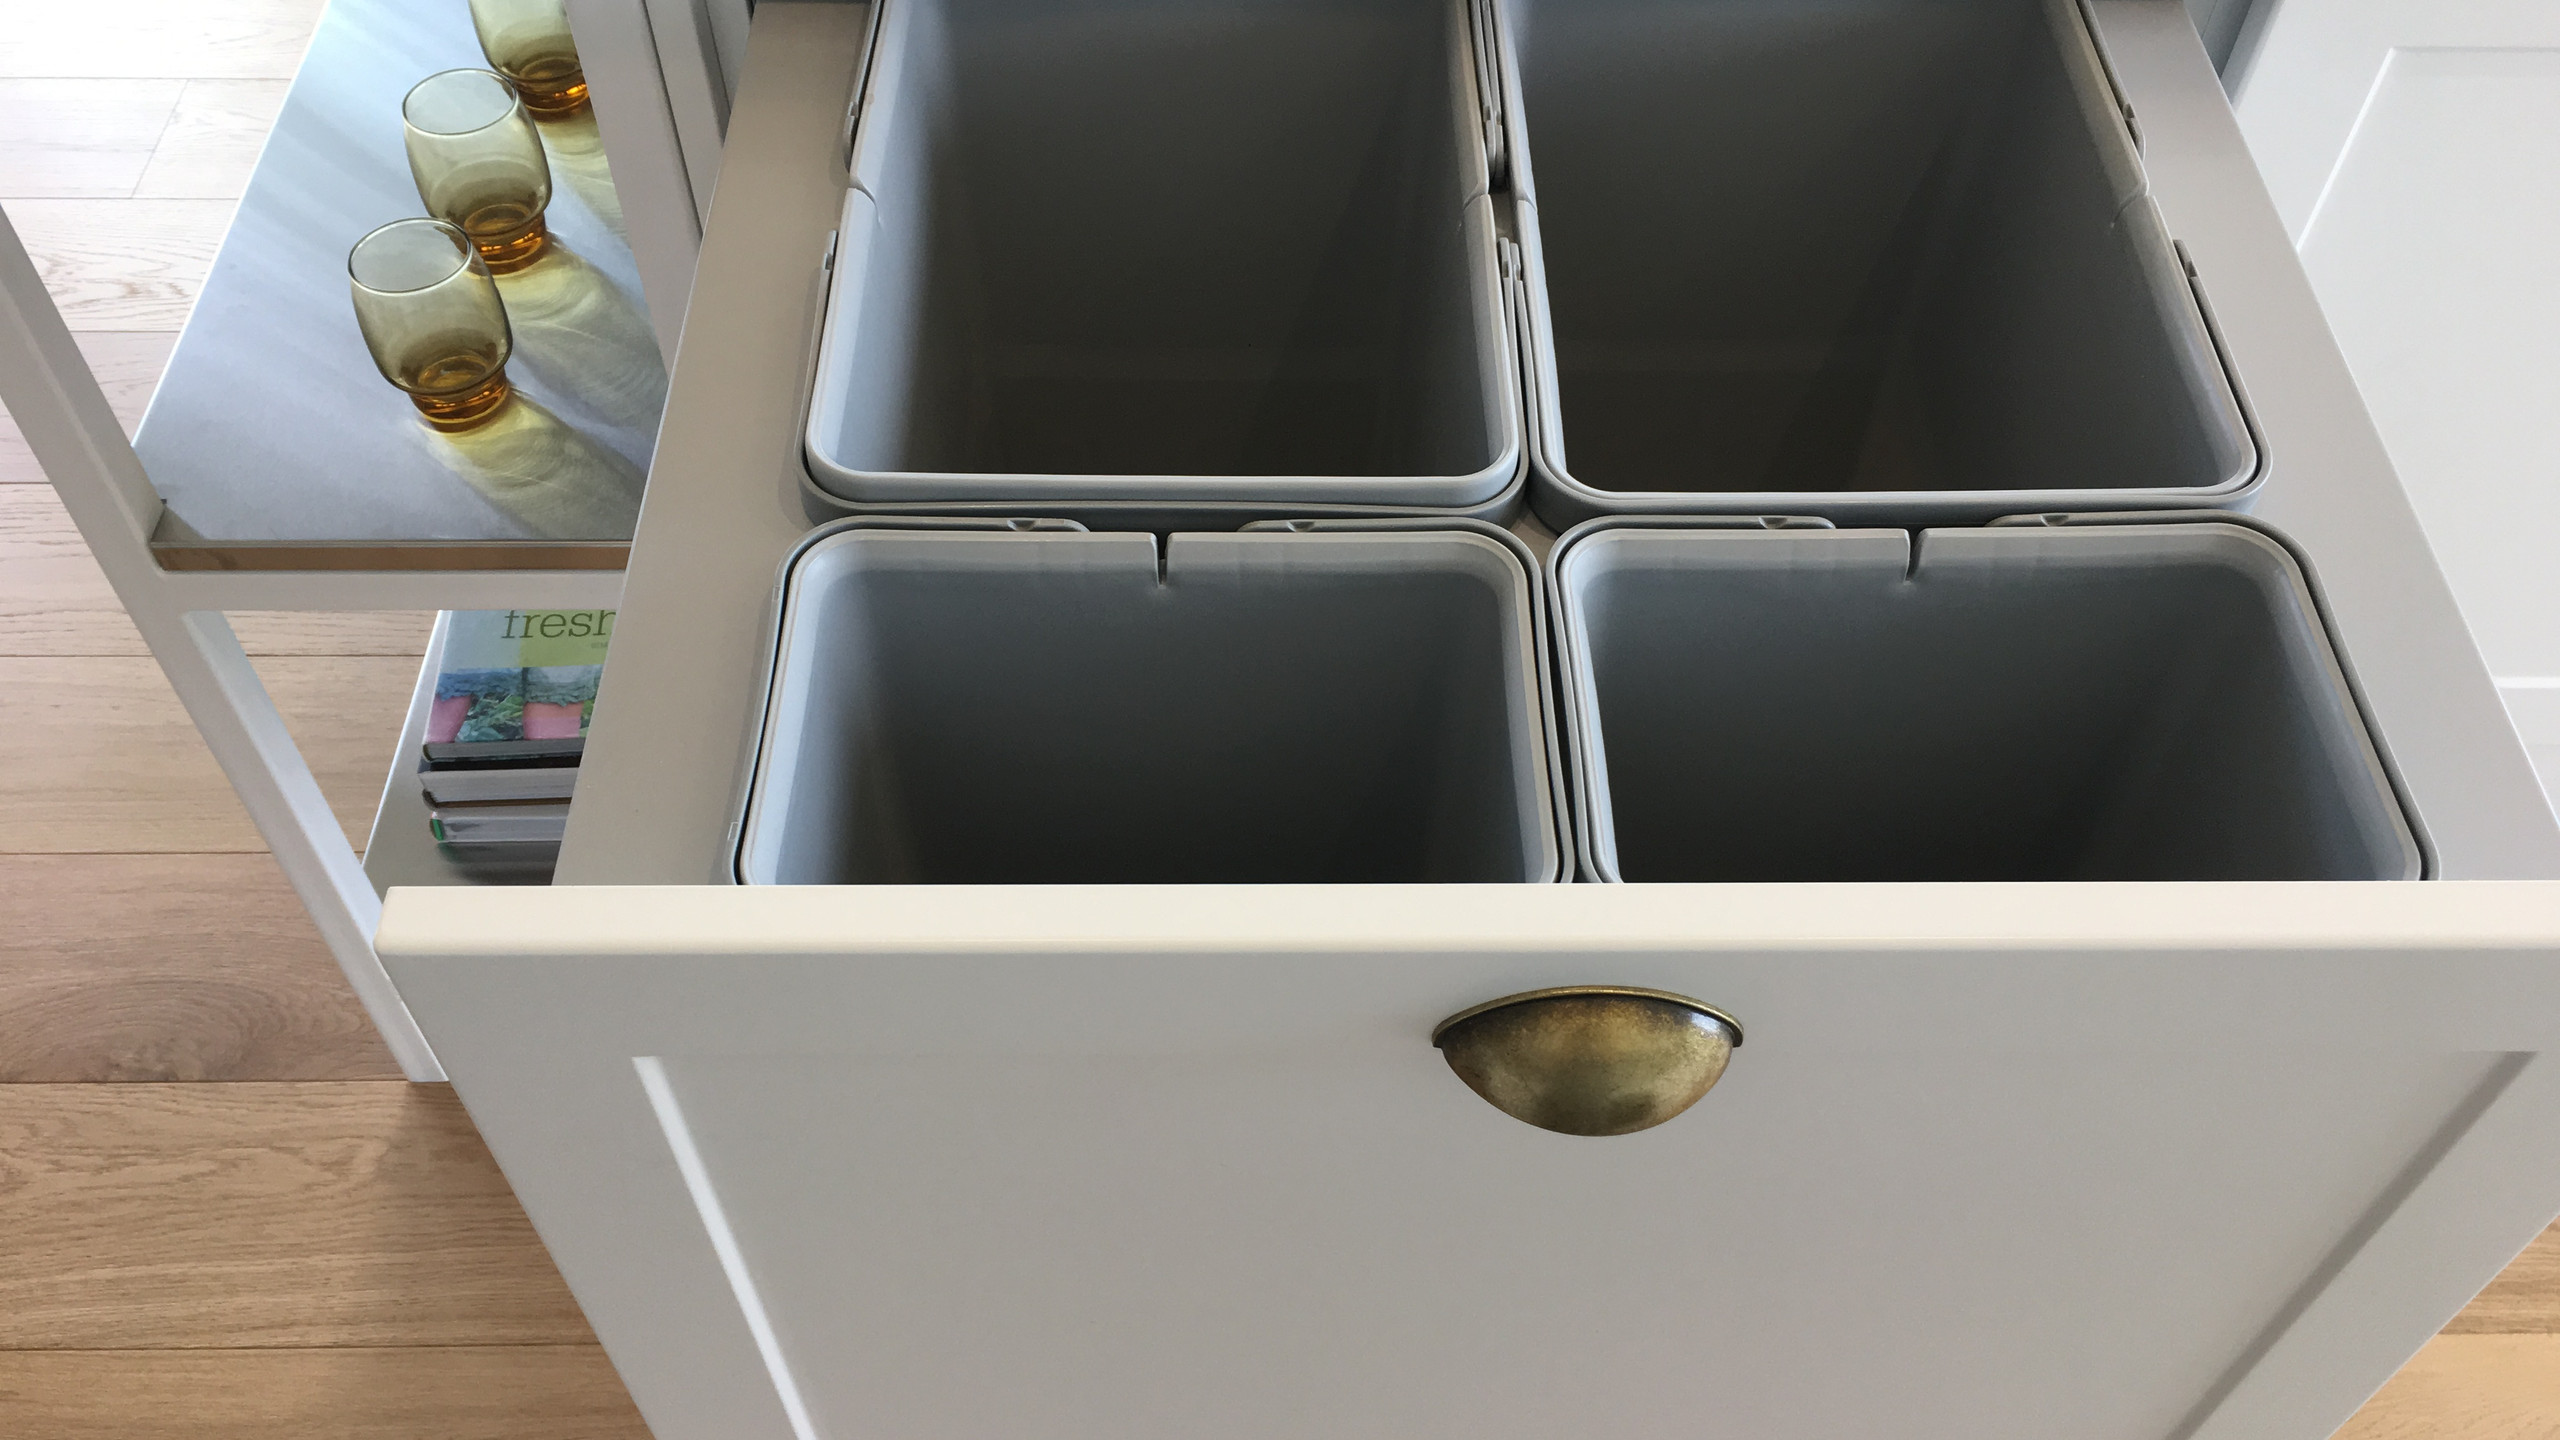 Larger rubbish bin with different compartments for recycling.